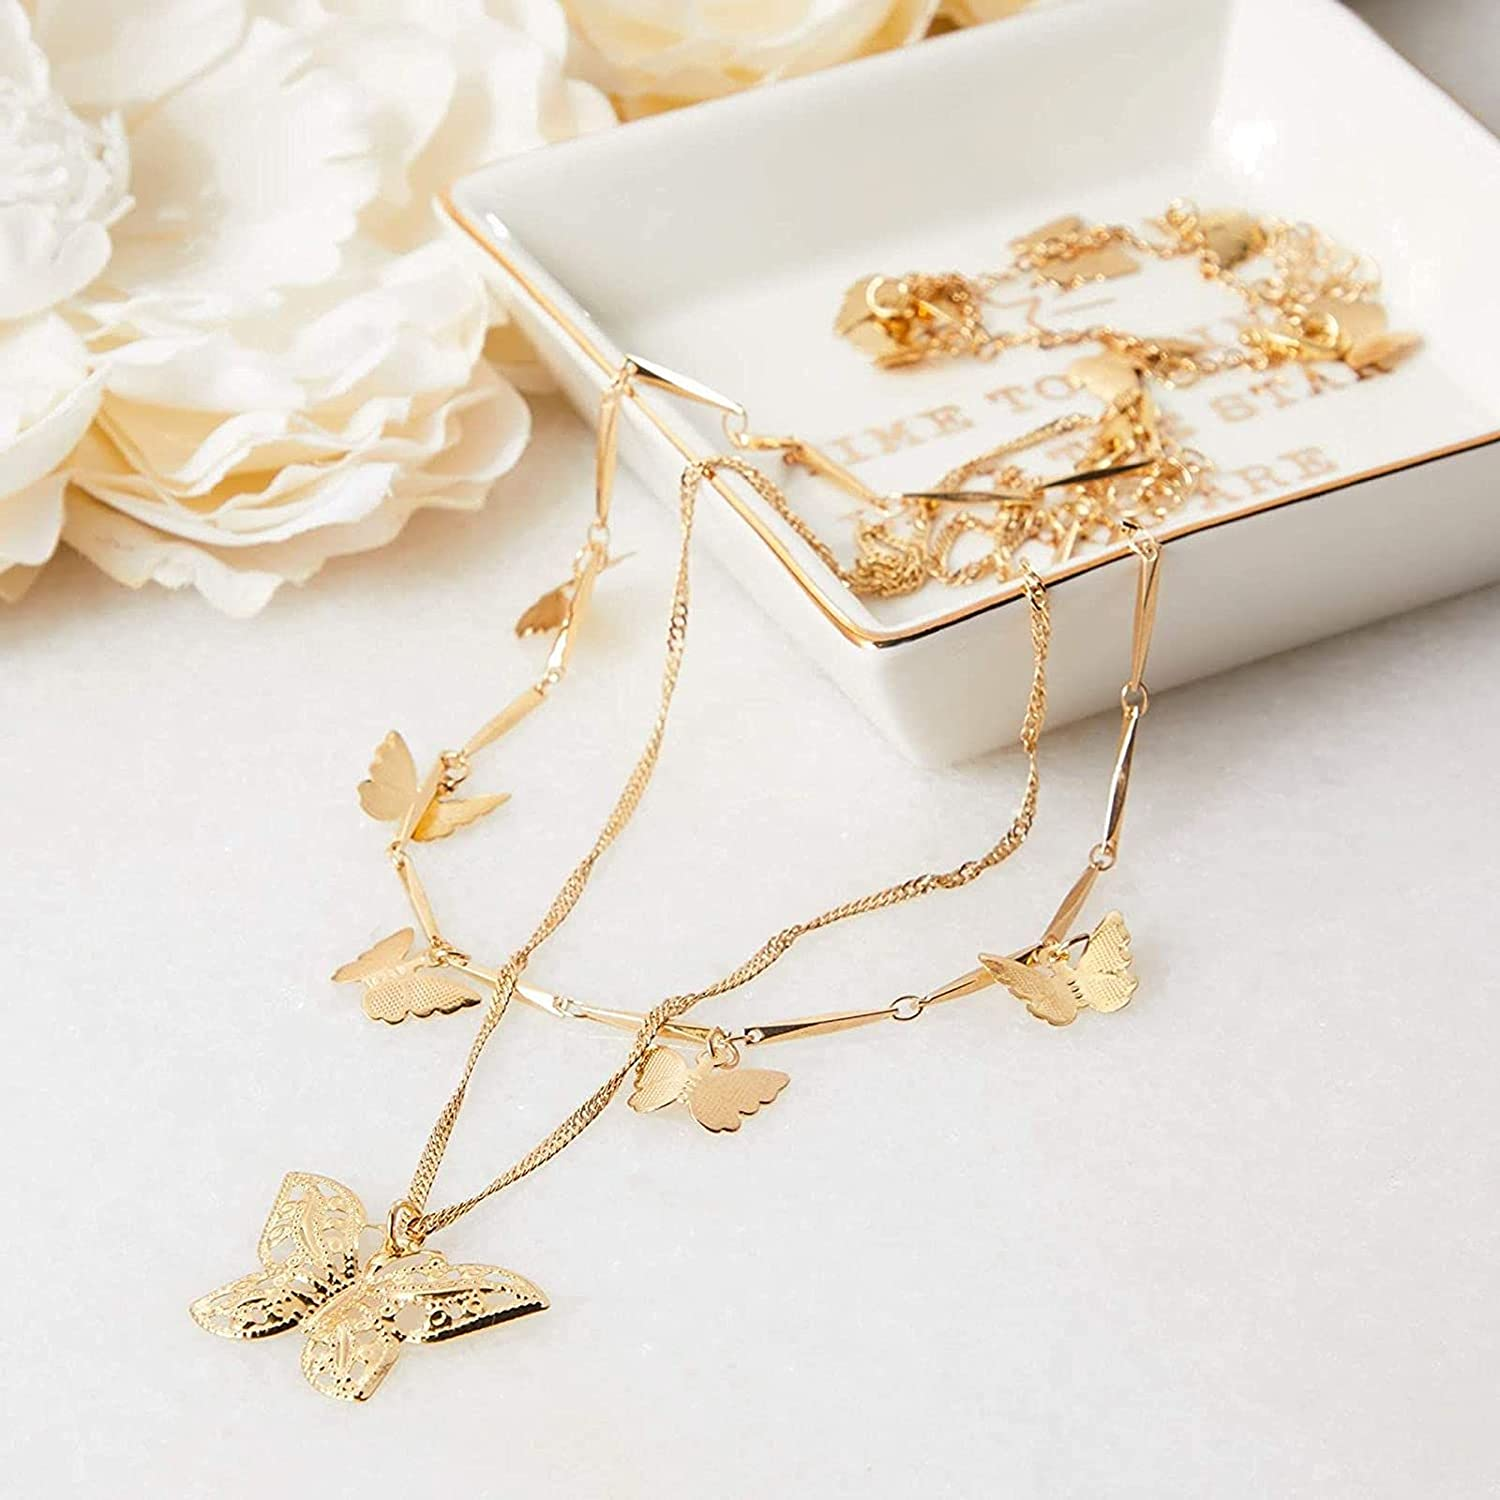 Glamlily Layered Gold Butterfly Necklace and Bracelet Set, Jewelry for Women (2 Pieces)